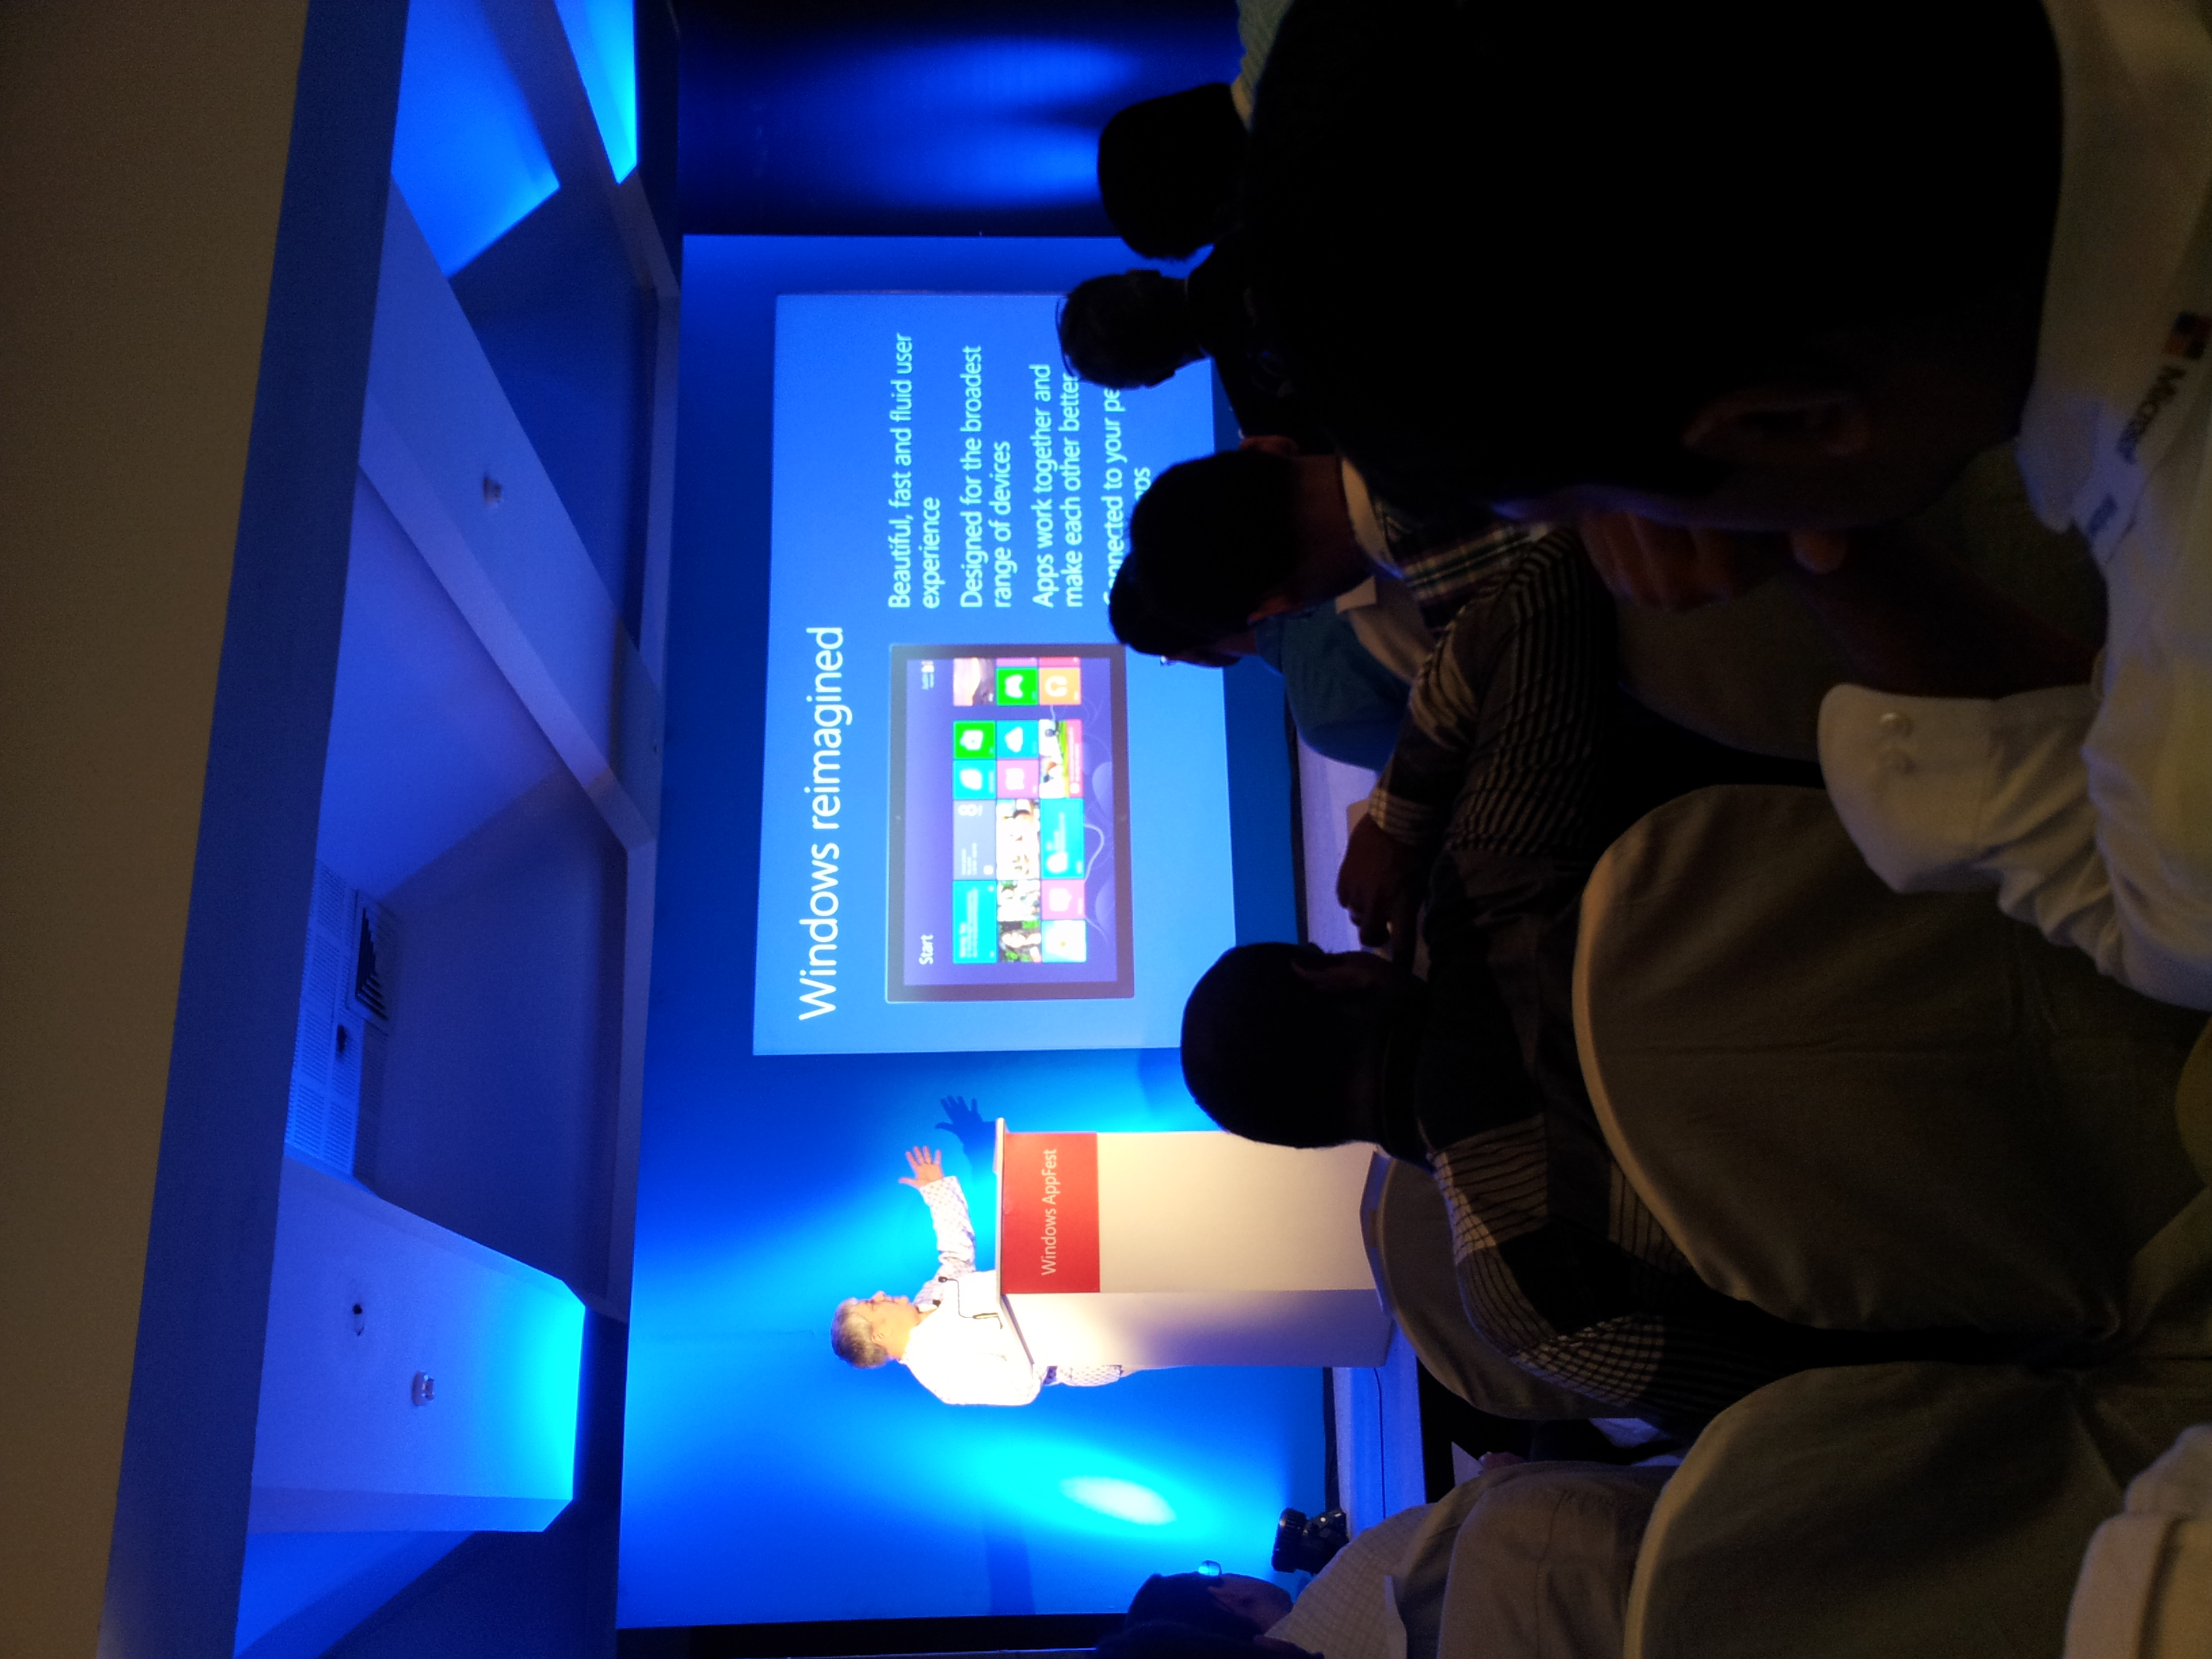 Windows 8 App Fest Live From KTPO Bangalore